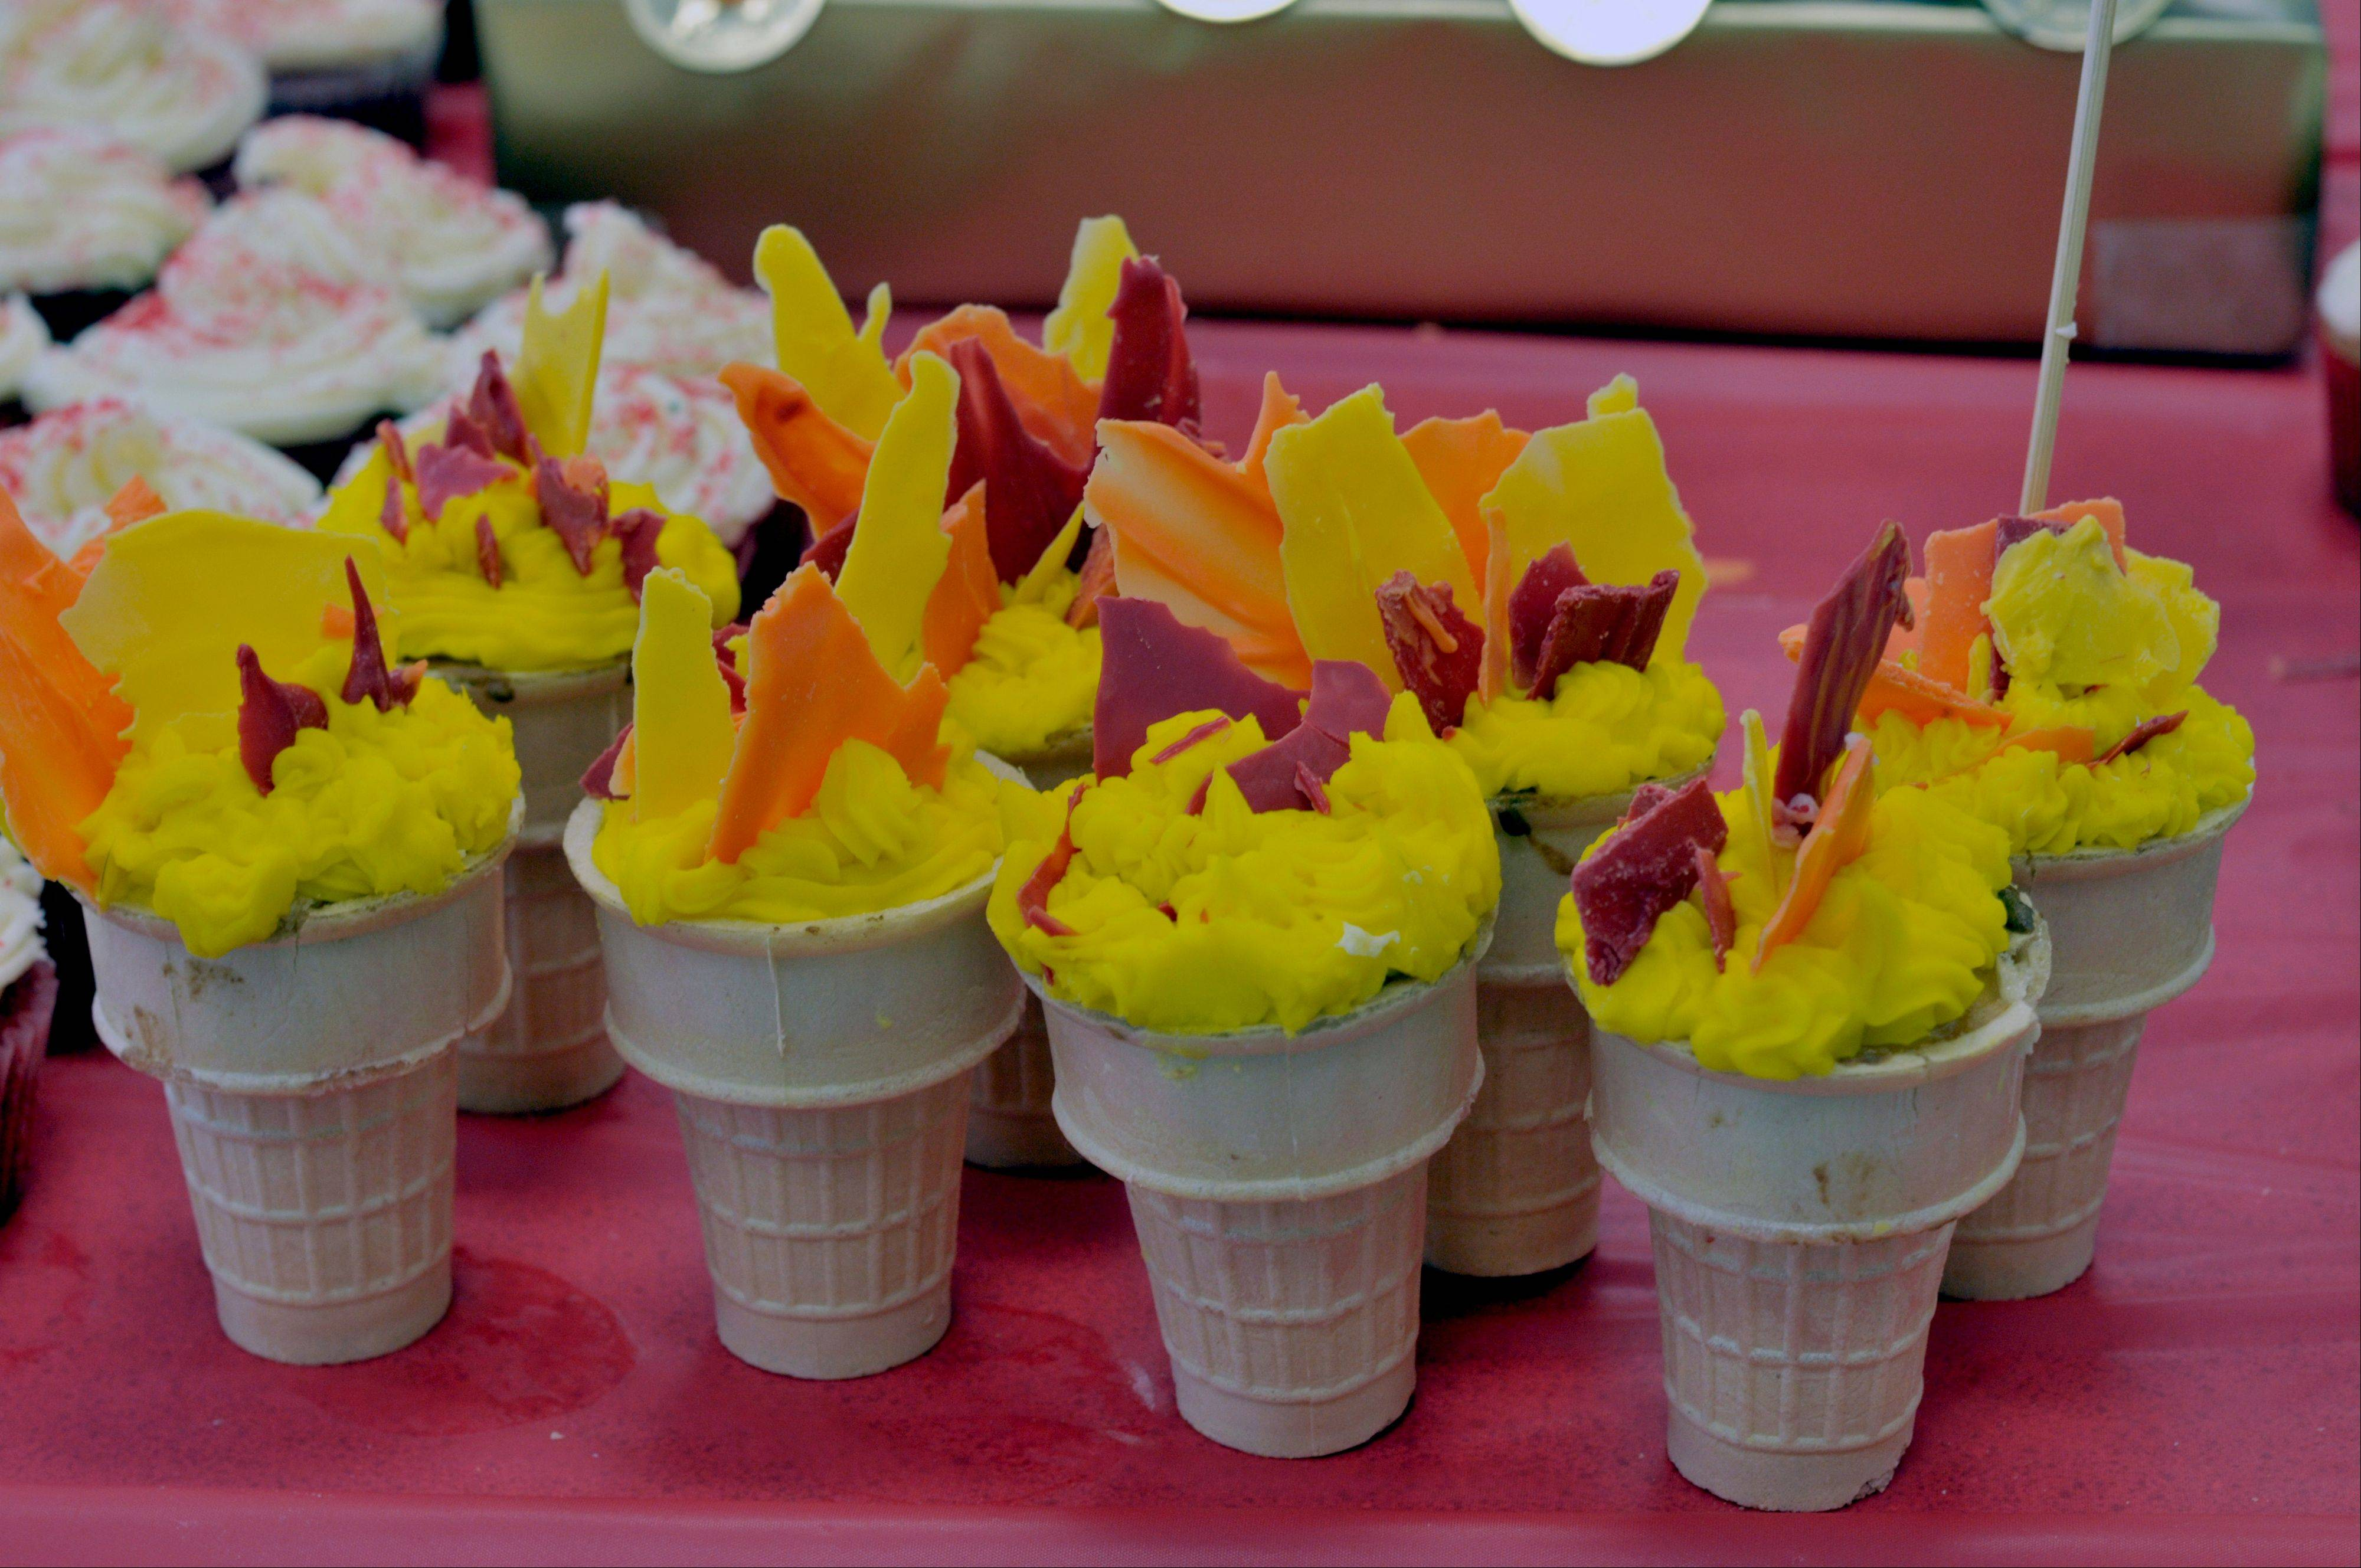 Some of the beautiful concoctions made for a recent fundraiser.